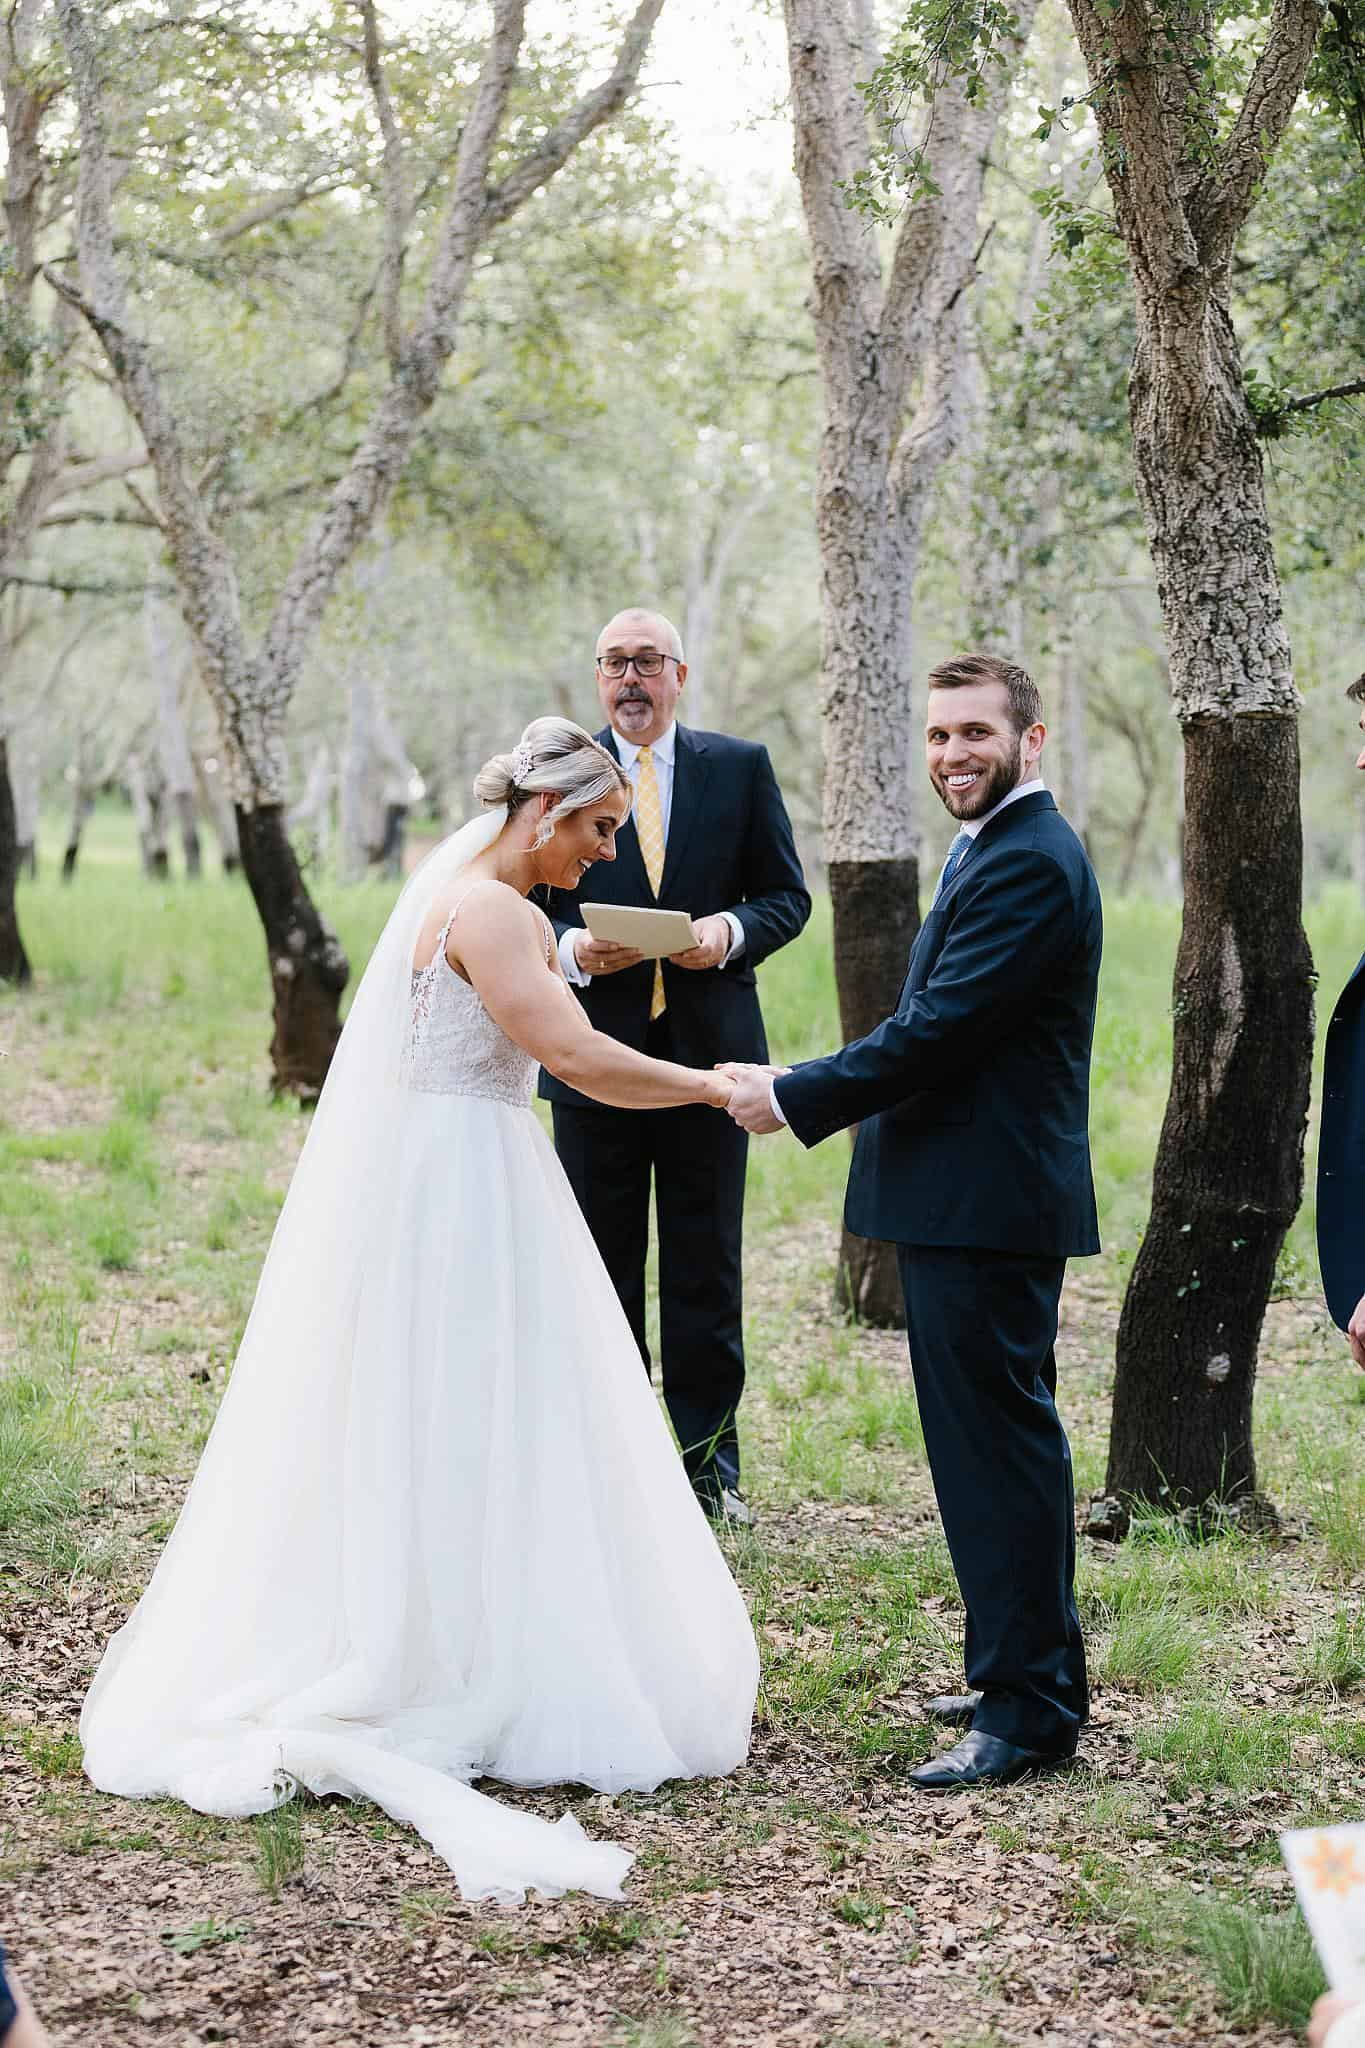 Bride and groom laugh with celebrant